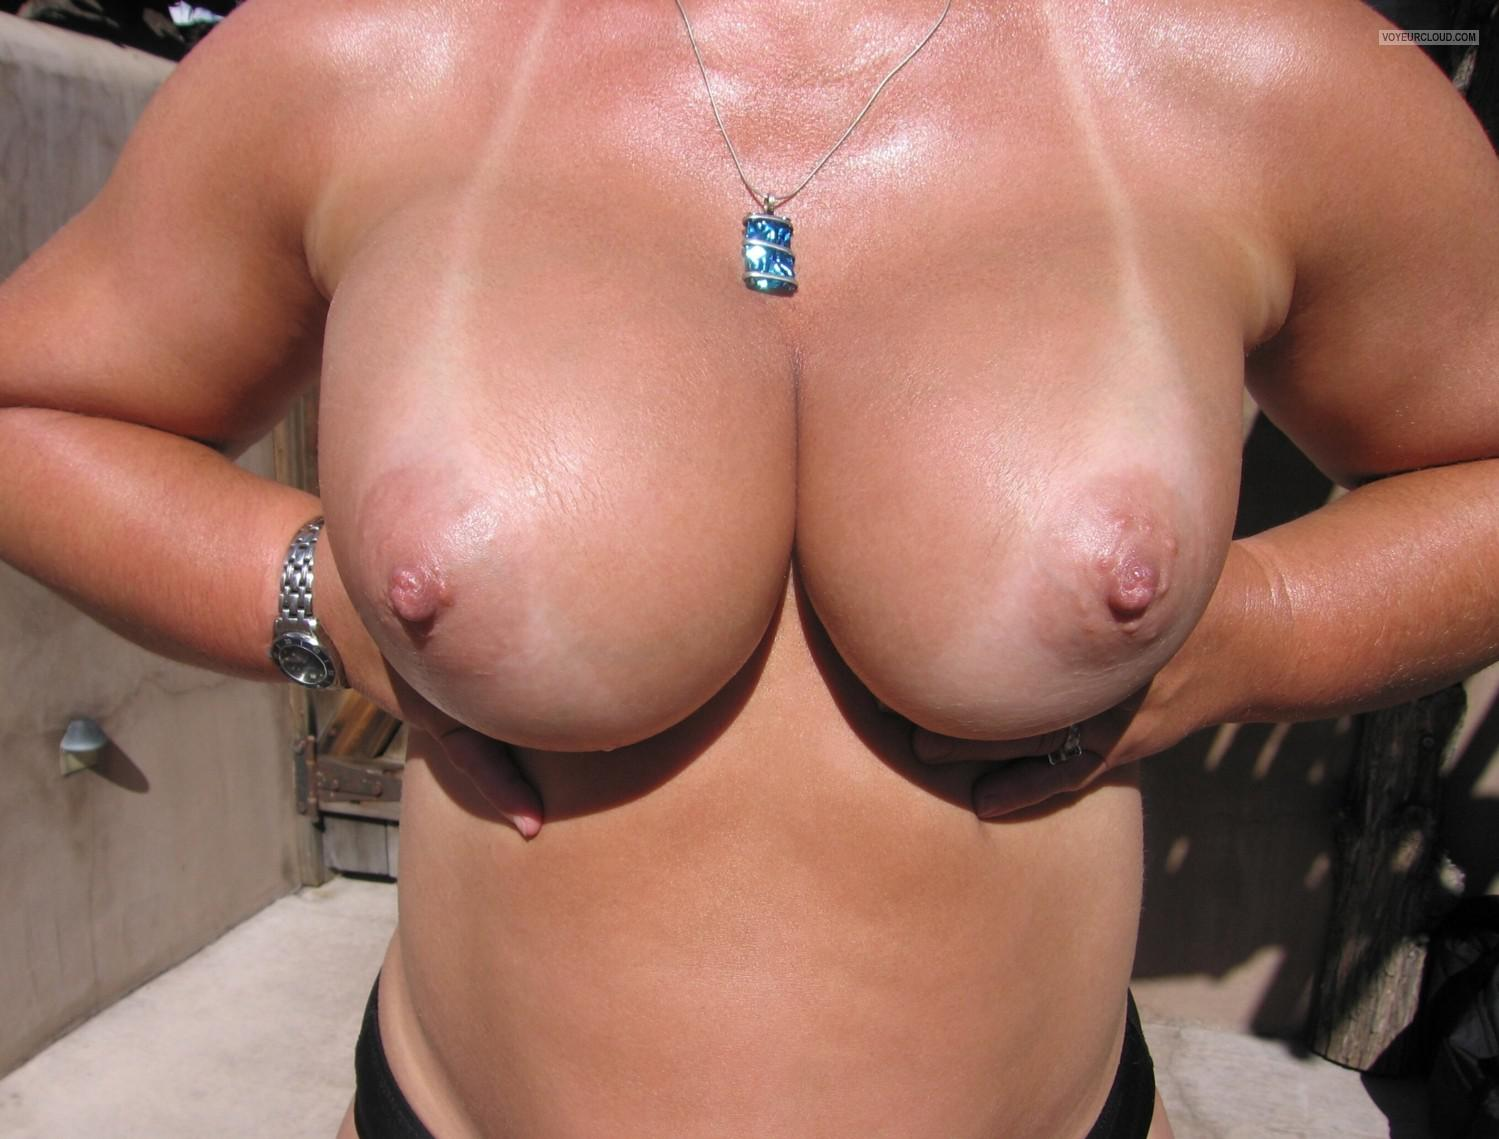 Tit Flash: My Tanlined Big Tits - Faans Flasher from United States